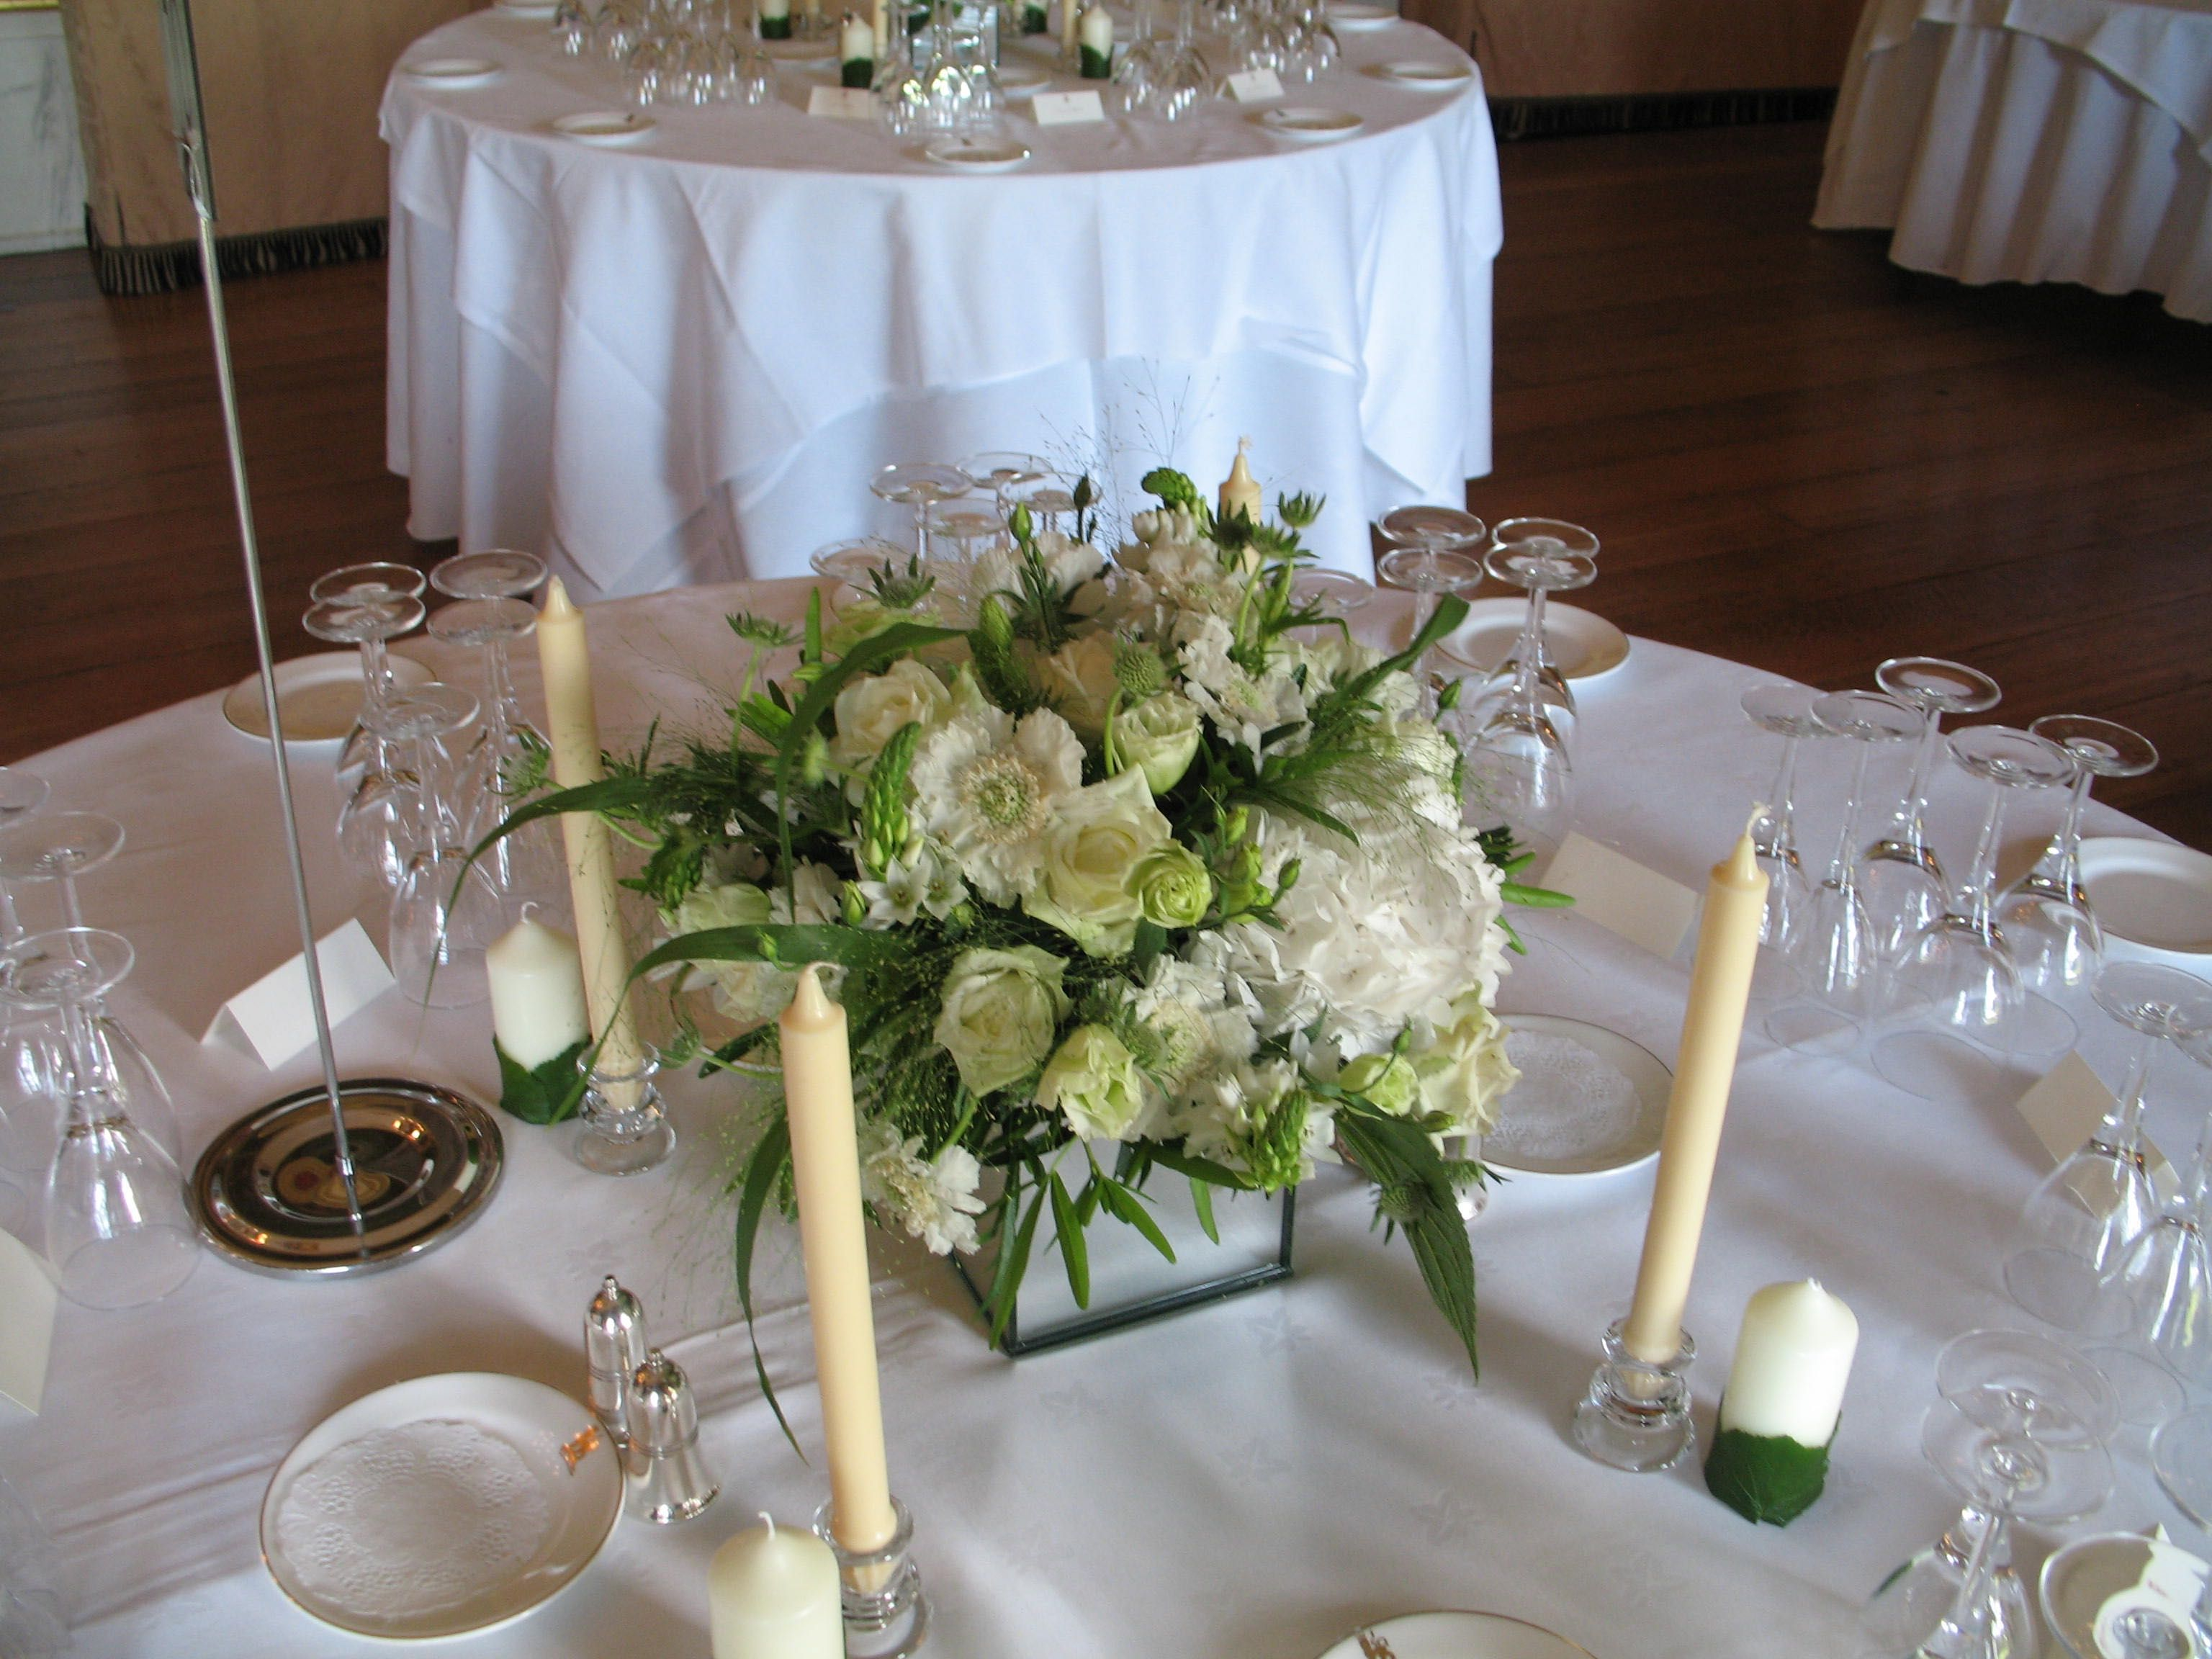 Lovely Table Centre At Goodwood House Decorated With Mirror Cube Filled With  Seasonal White And Green Flowers